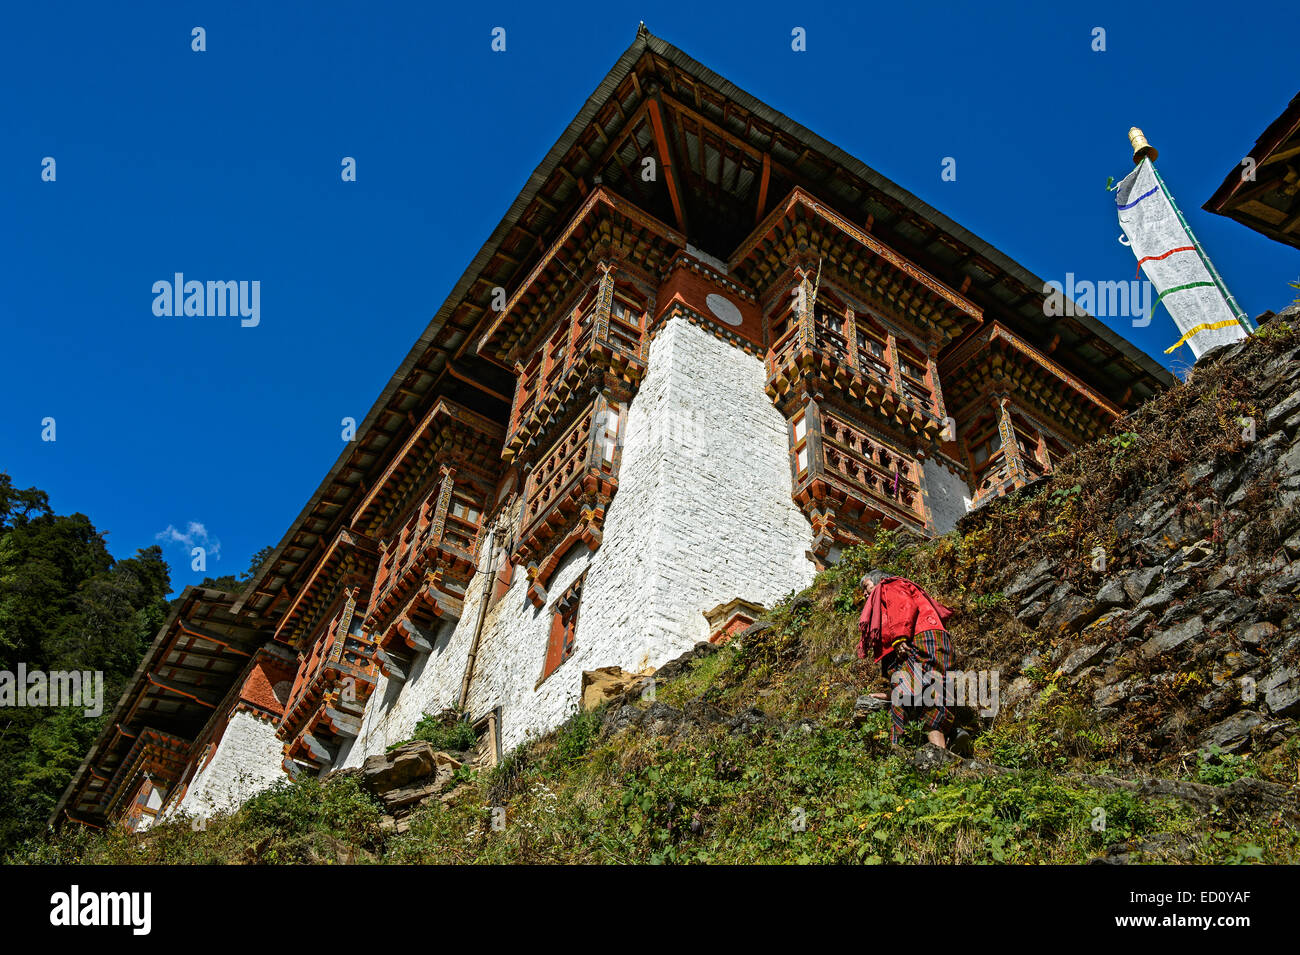 Female pilgram on the way to the Tango Monastery, Bhutan - Stock Image